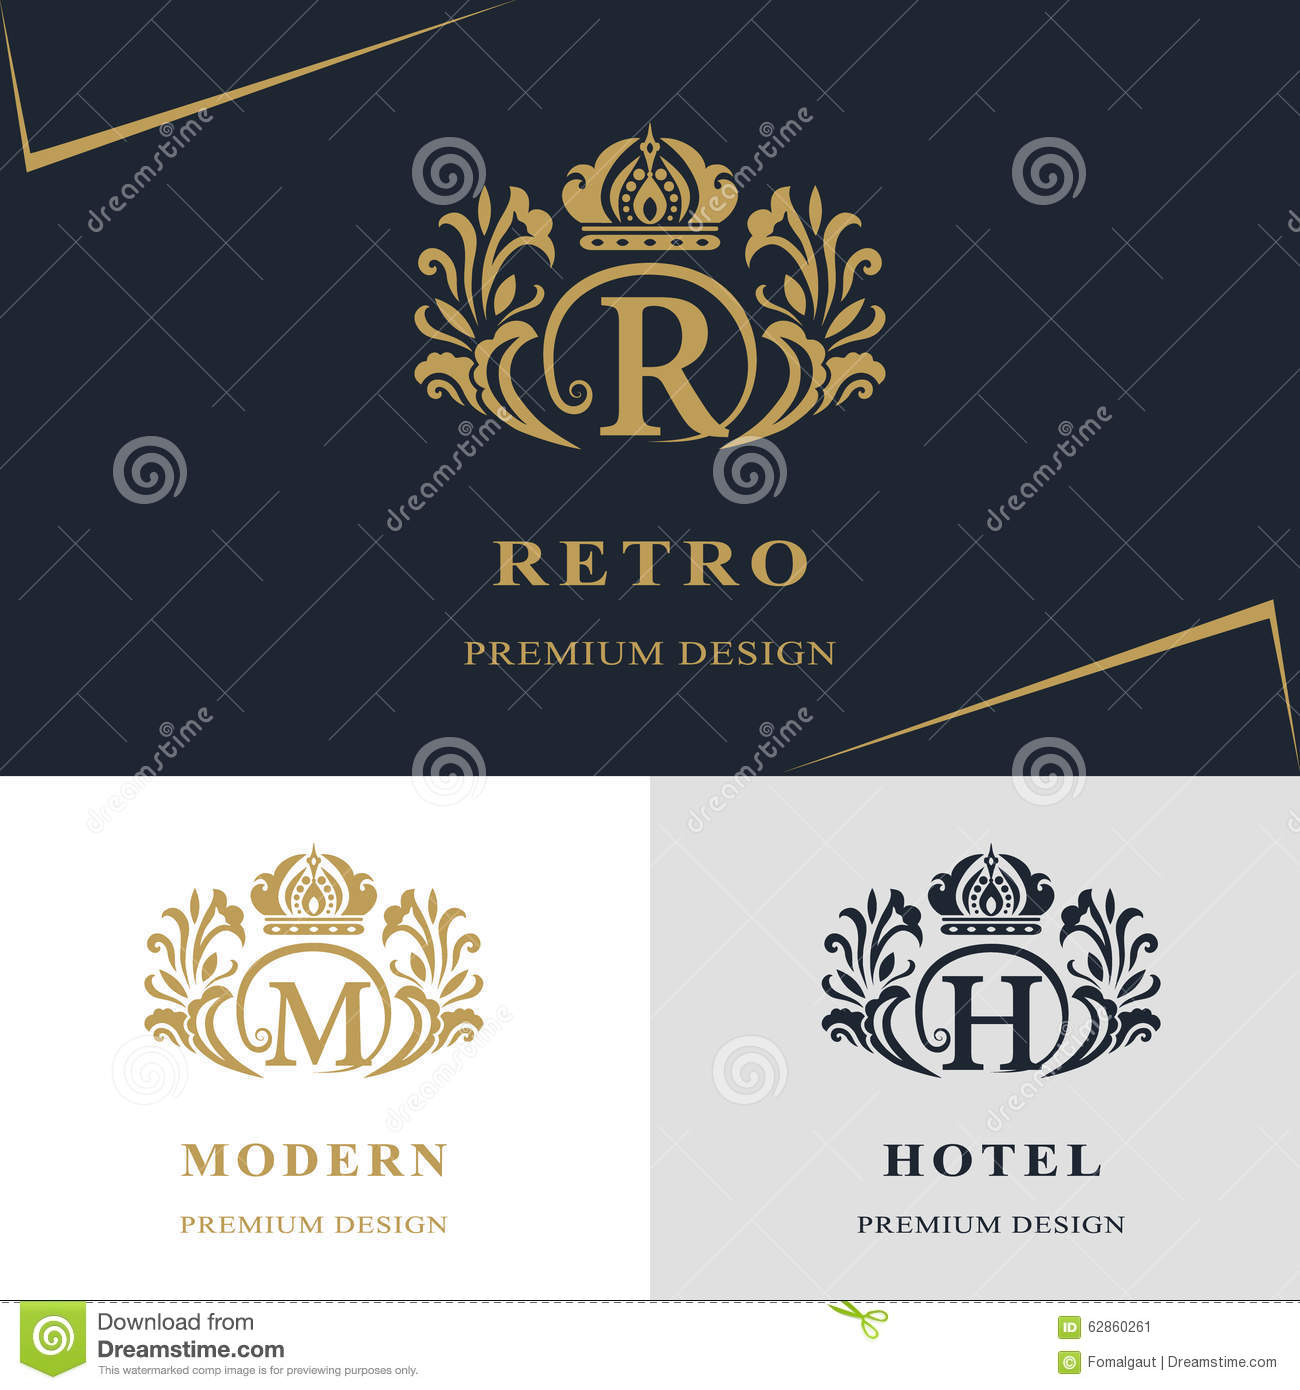 Download Monogram Design Elements Graceful Template Calligraphic Elegant Line Art Logo Letter